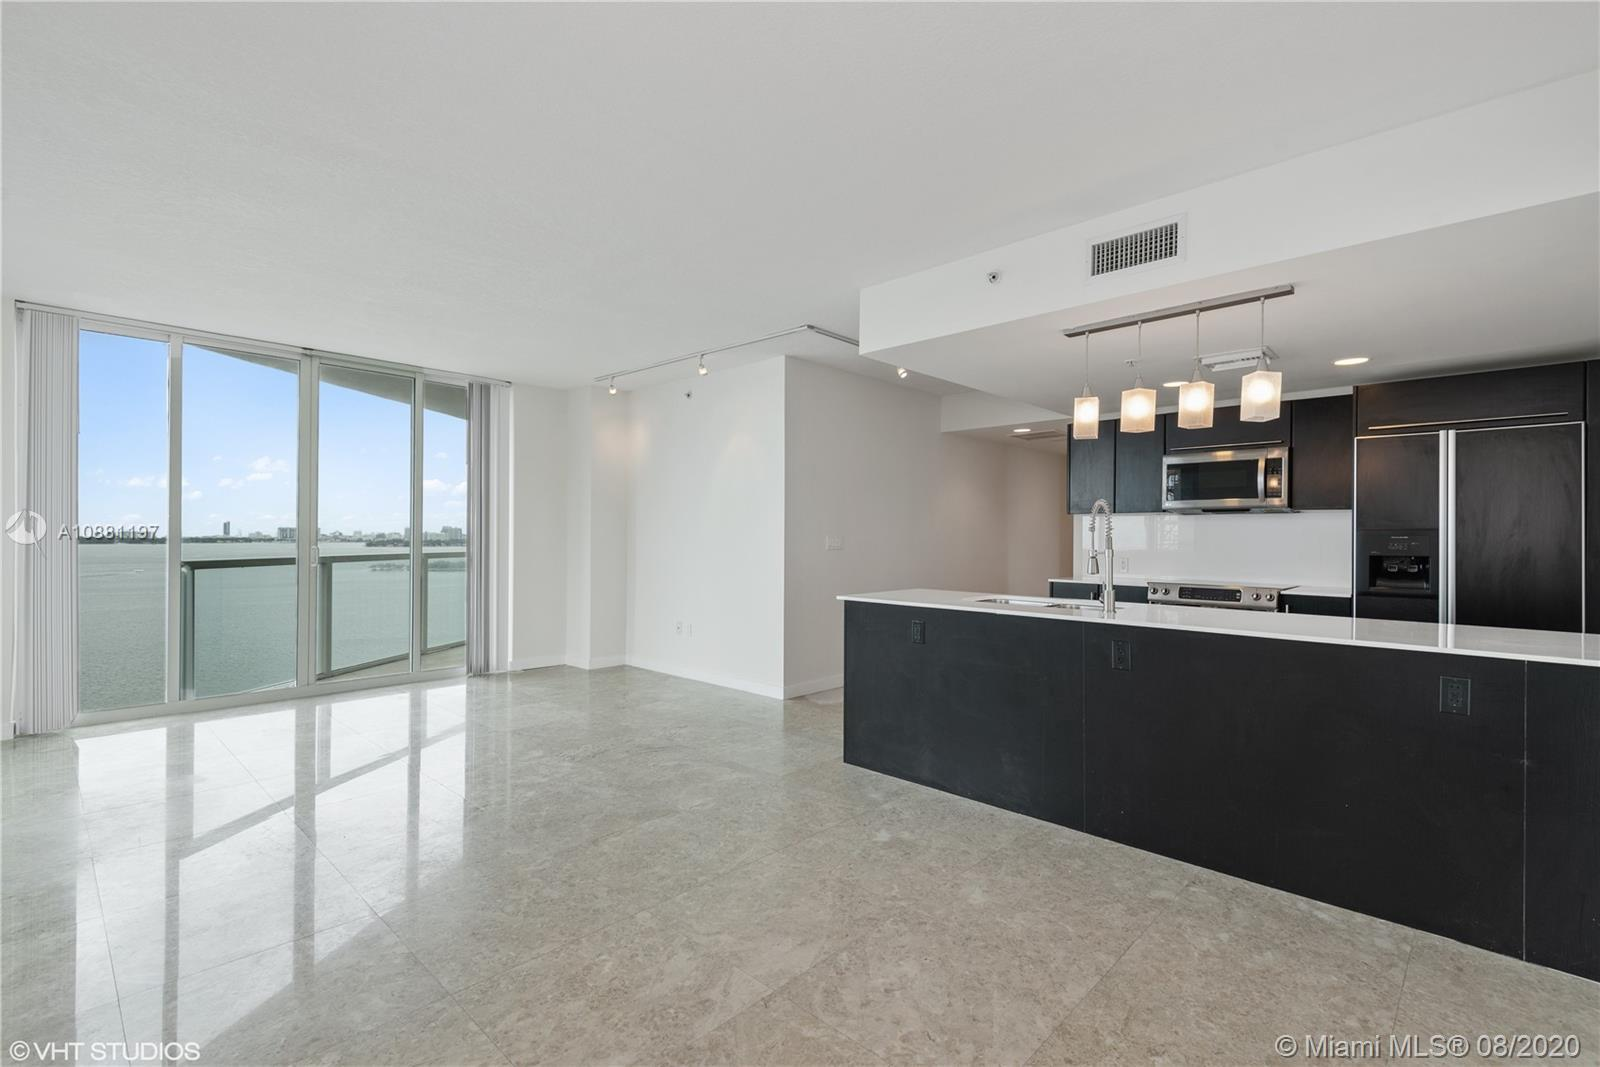 Best Priced Condo in the entire Building- Condo 1105 at Onyx on the Bay is located in the heart of t